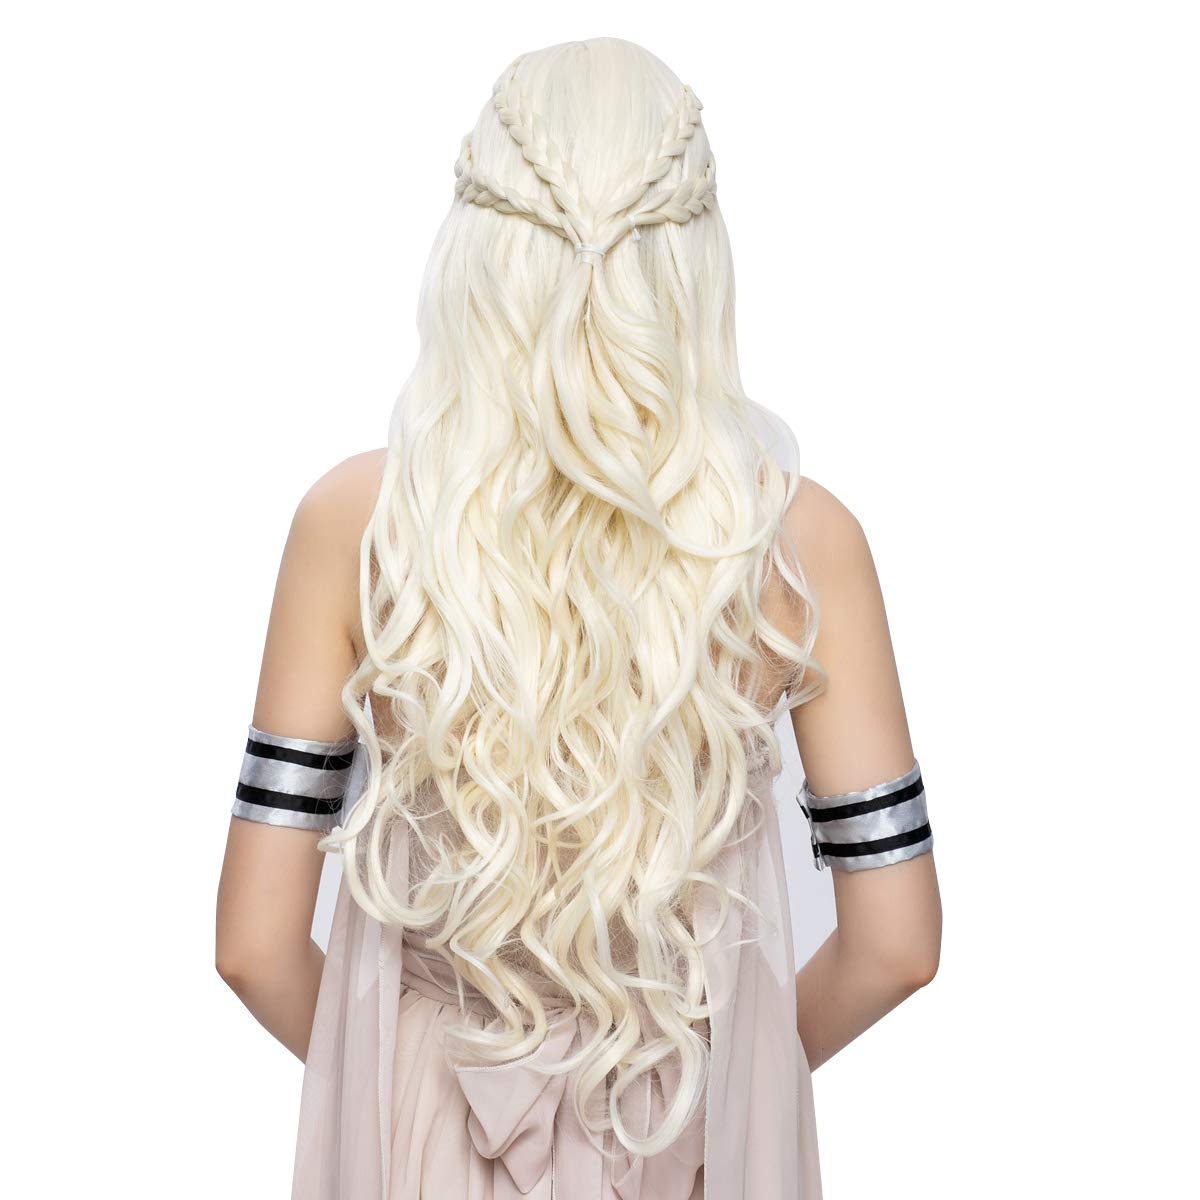 Daenerys Targaryen Cosplay Wig for Game of Thrones Season 7 - Khaleesi Costume Hair Wig  Light blonde